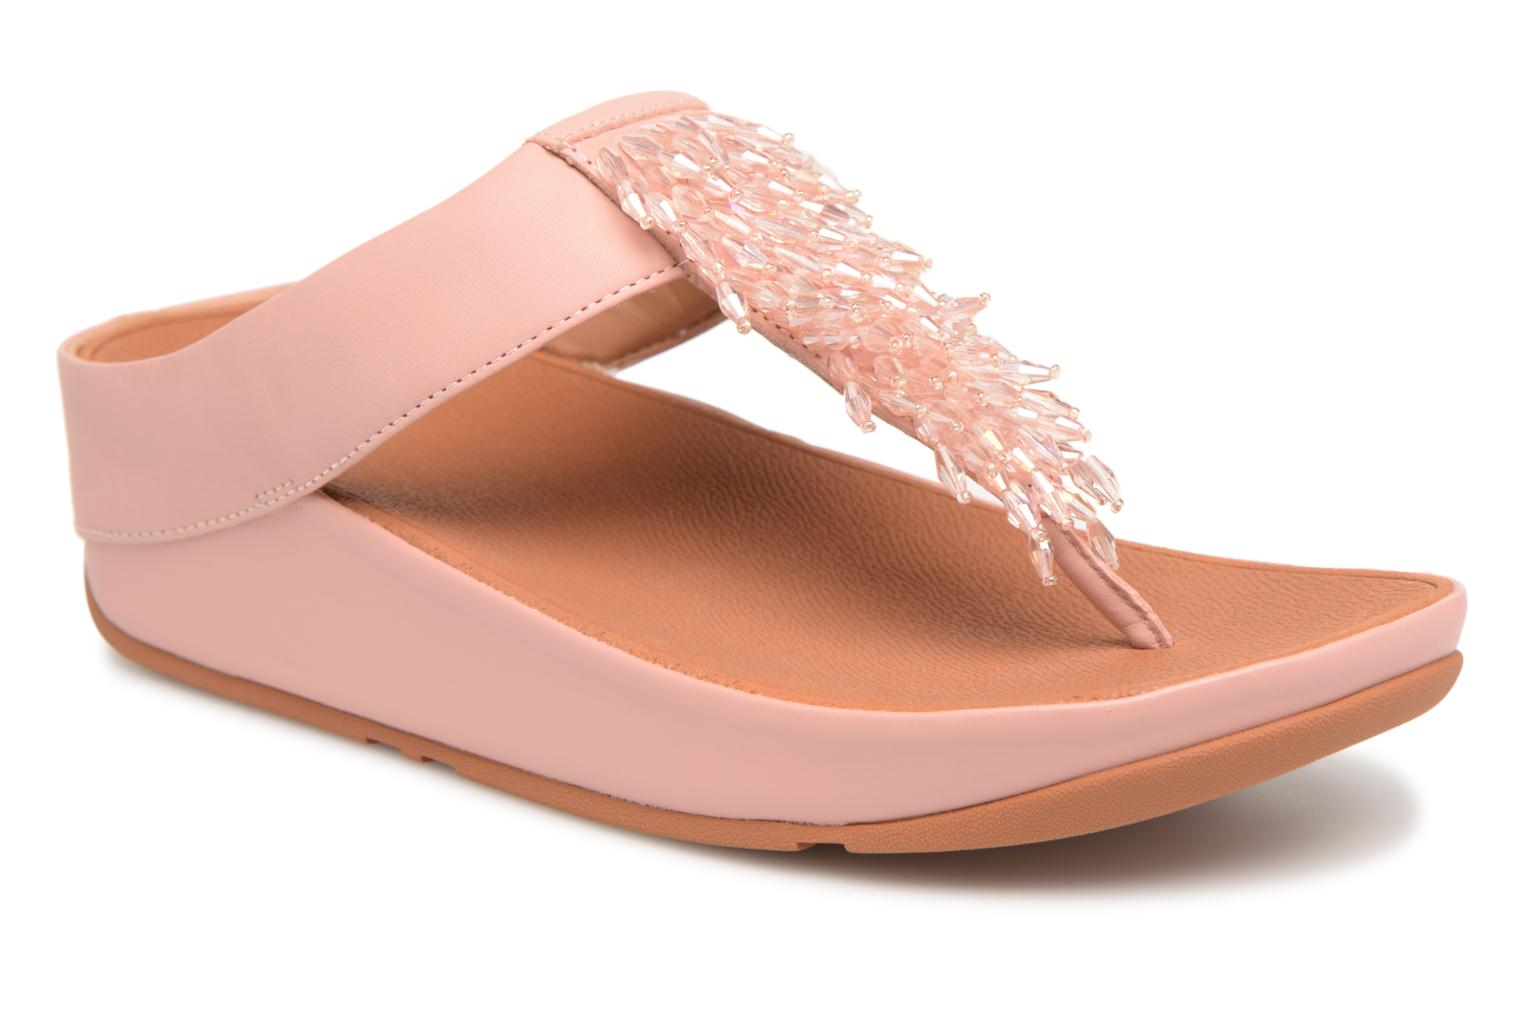 Marques Chaussure femme FitFlop femme Cha Cha Crystal Dusty Pink